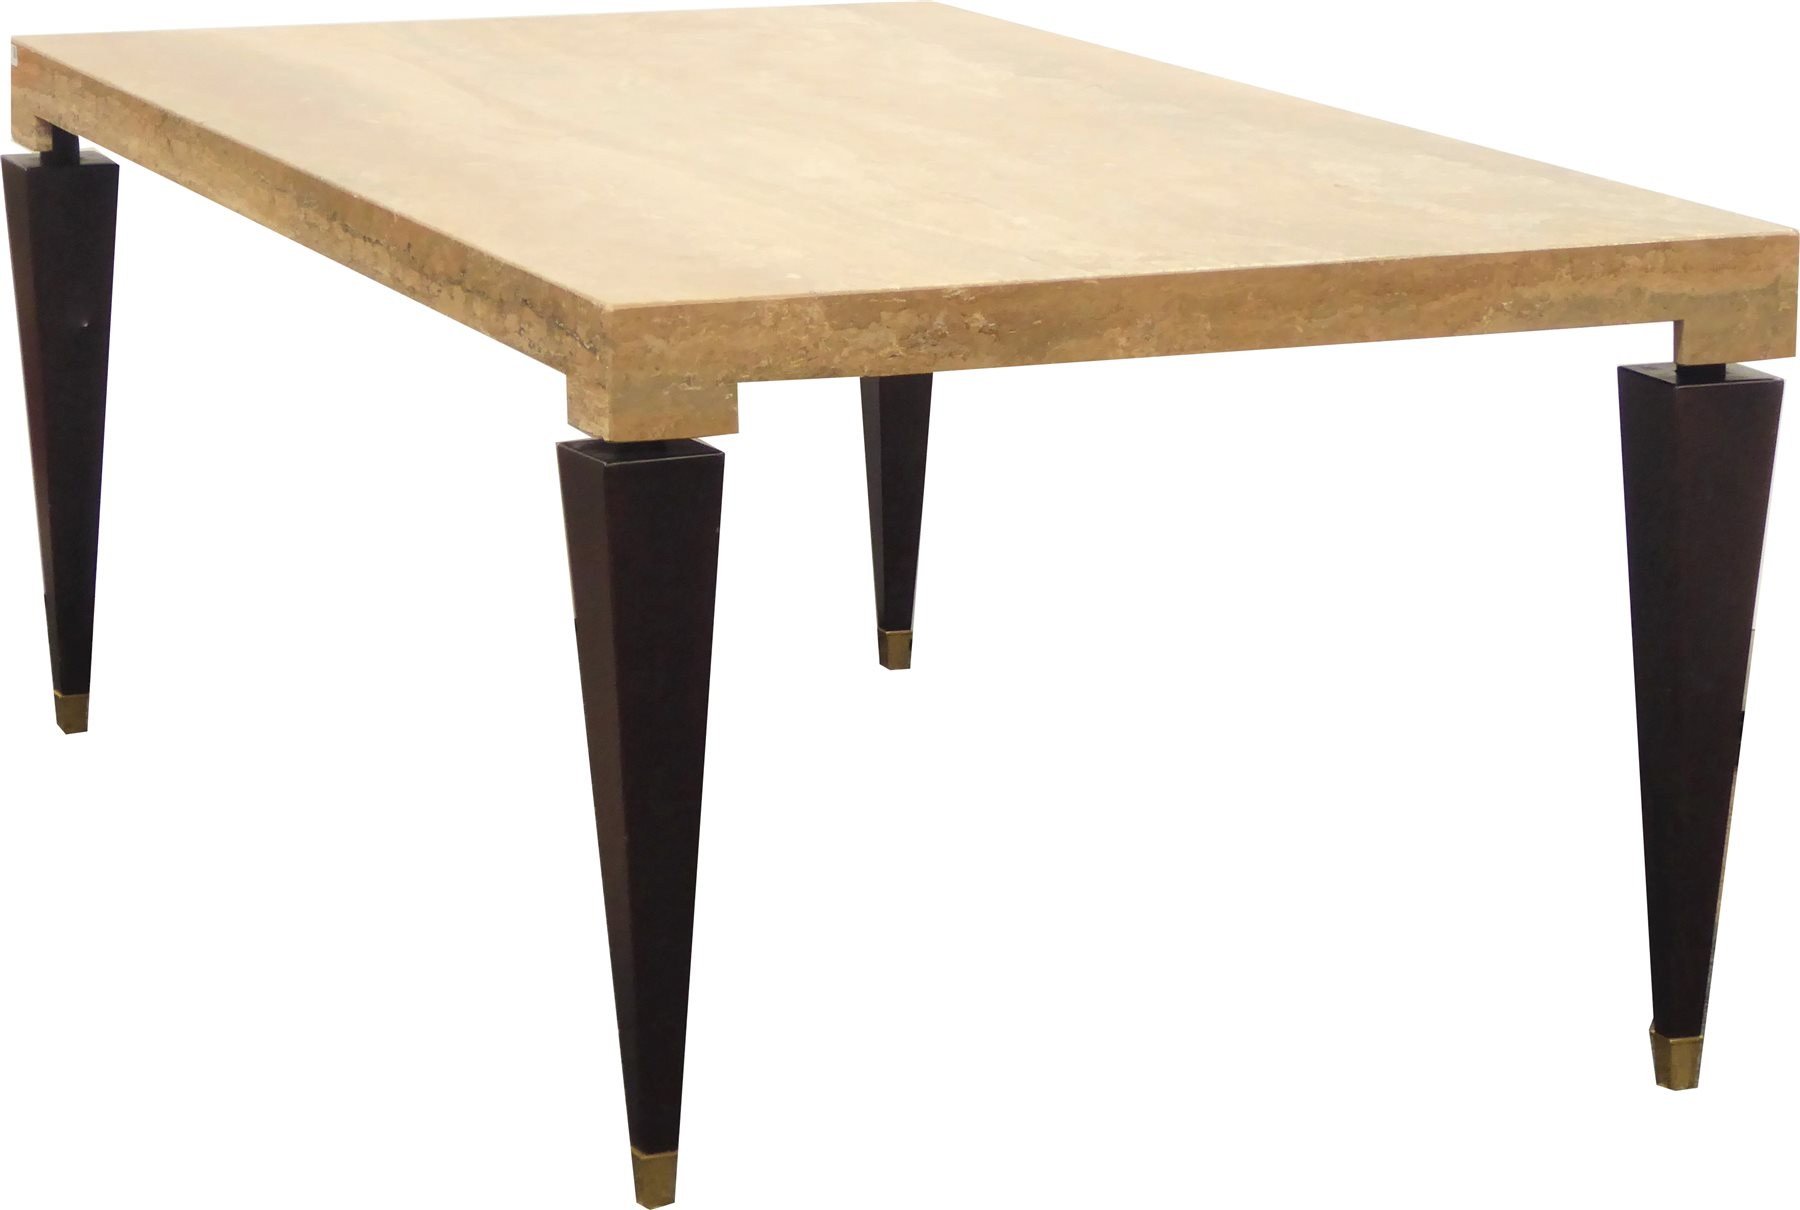 Modern Italian Made Marble Dining Table By Stone International Rectangular Top Raised On Square Tapering Walnut Supports Terminating In Brass Cups 200cm X 106cm H76cm Antiques Fine Art Interiors